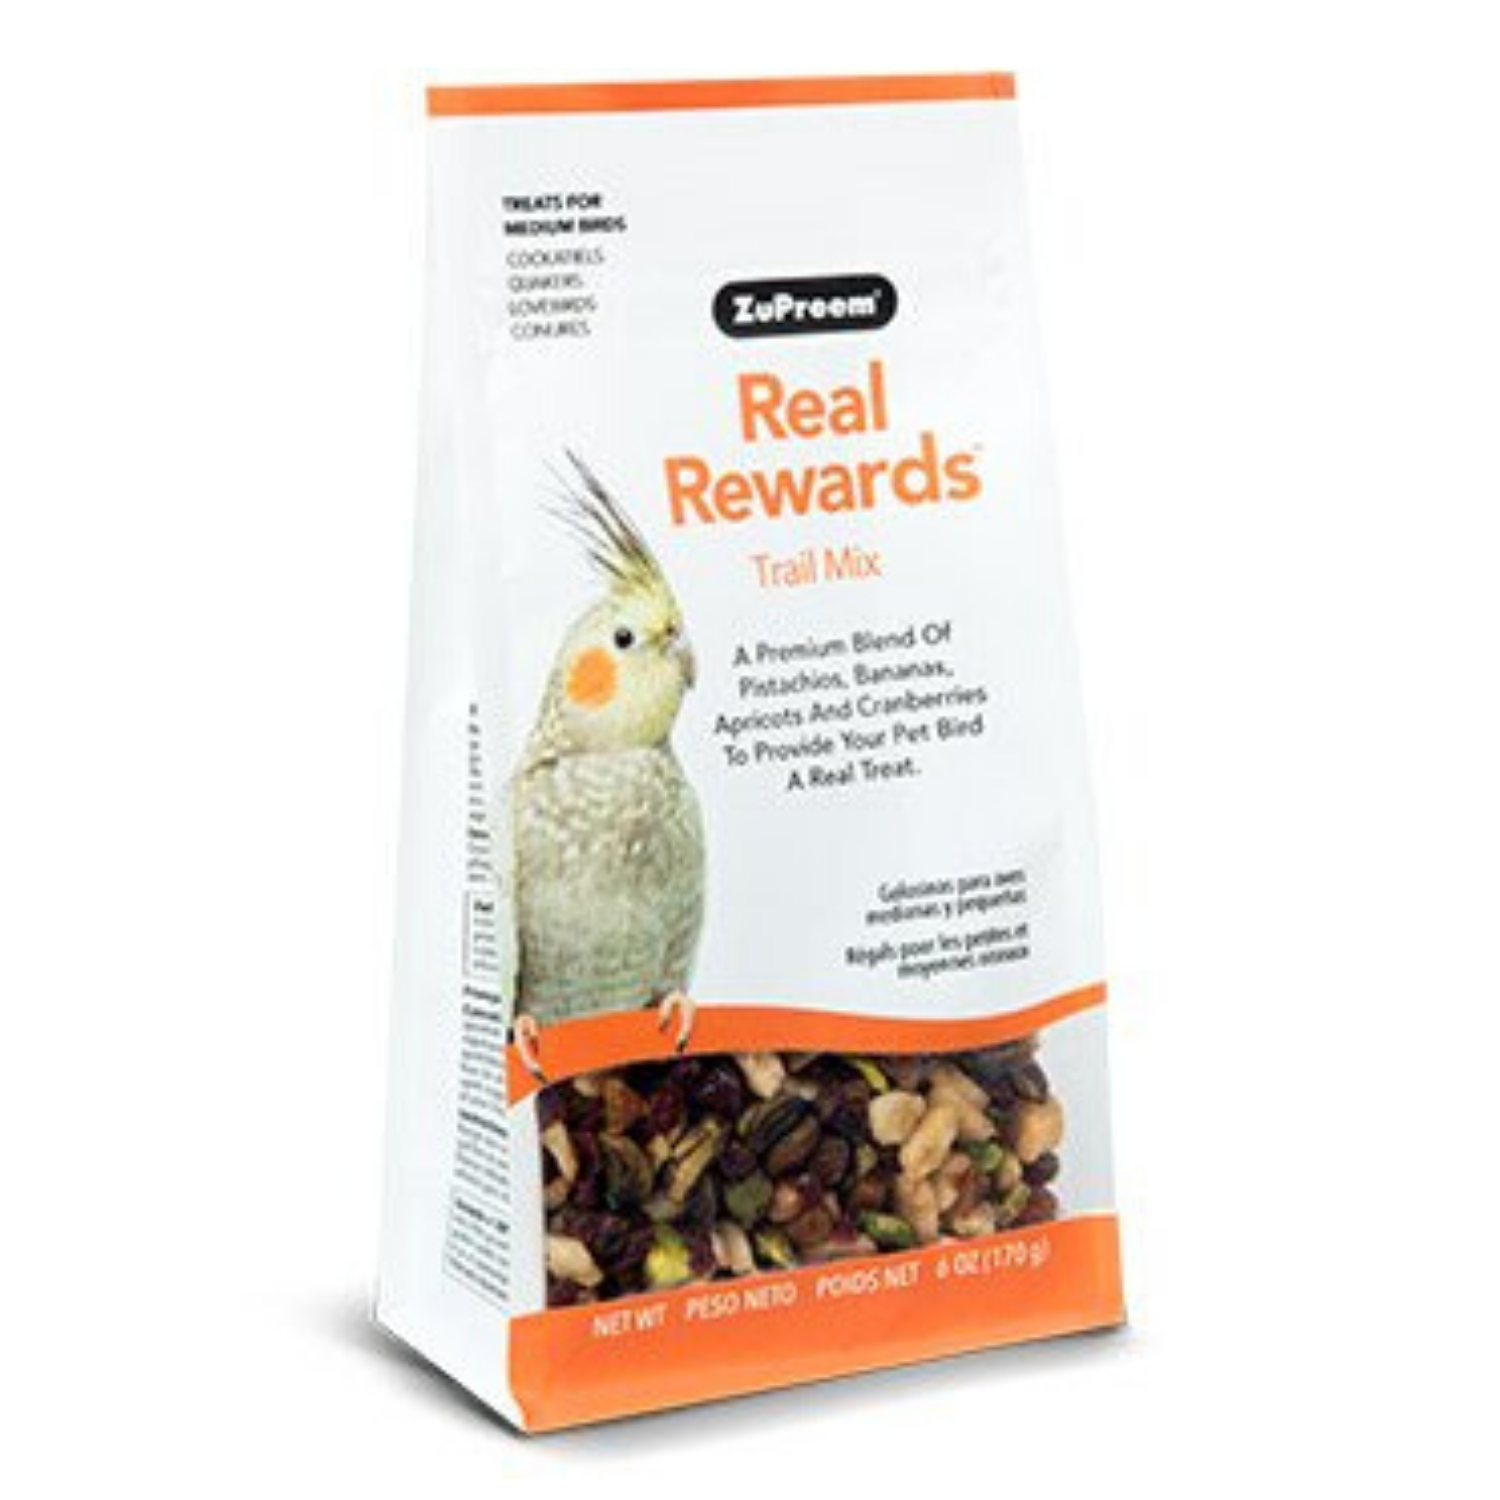 ZuPreem Real Rewards Trail Mix - Medium Birds - 170g